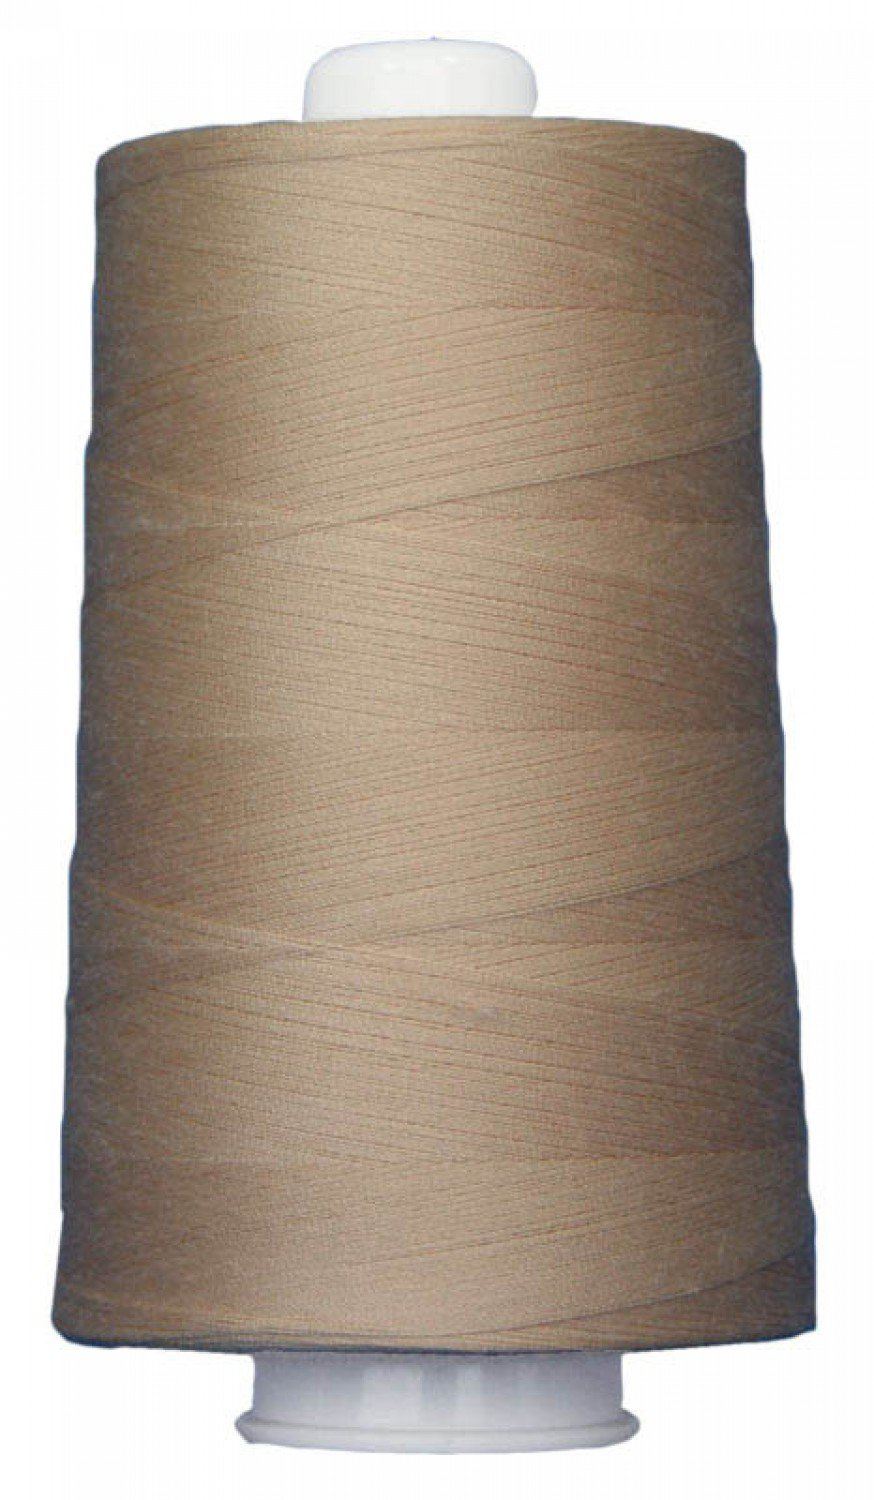 OMNI Polyester Thread 40 wt 6000 yds 3011 Buff by Superior